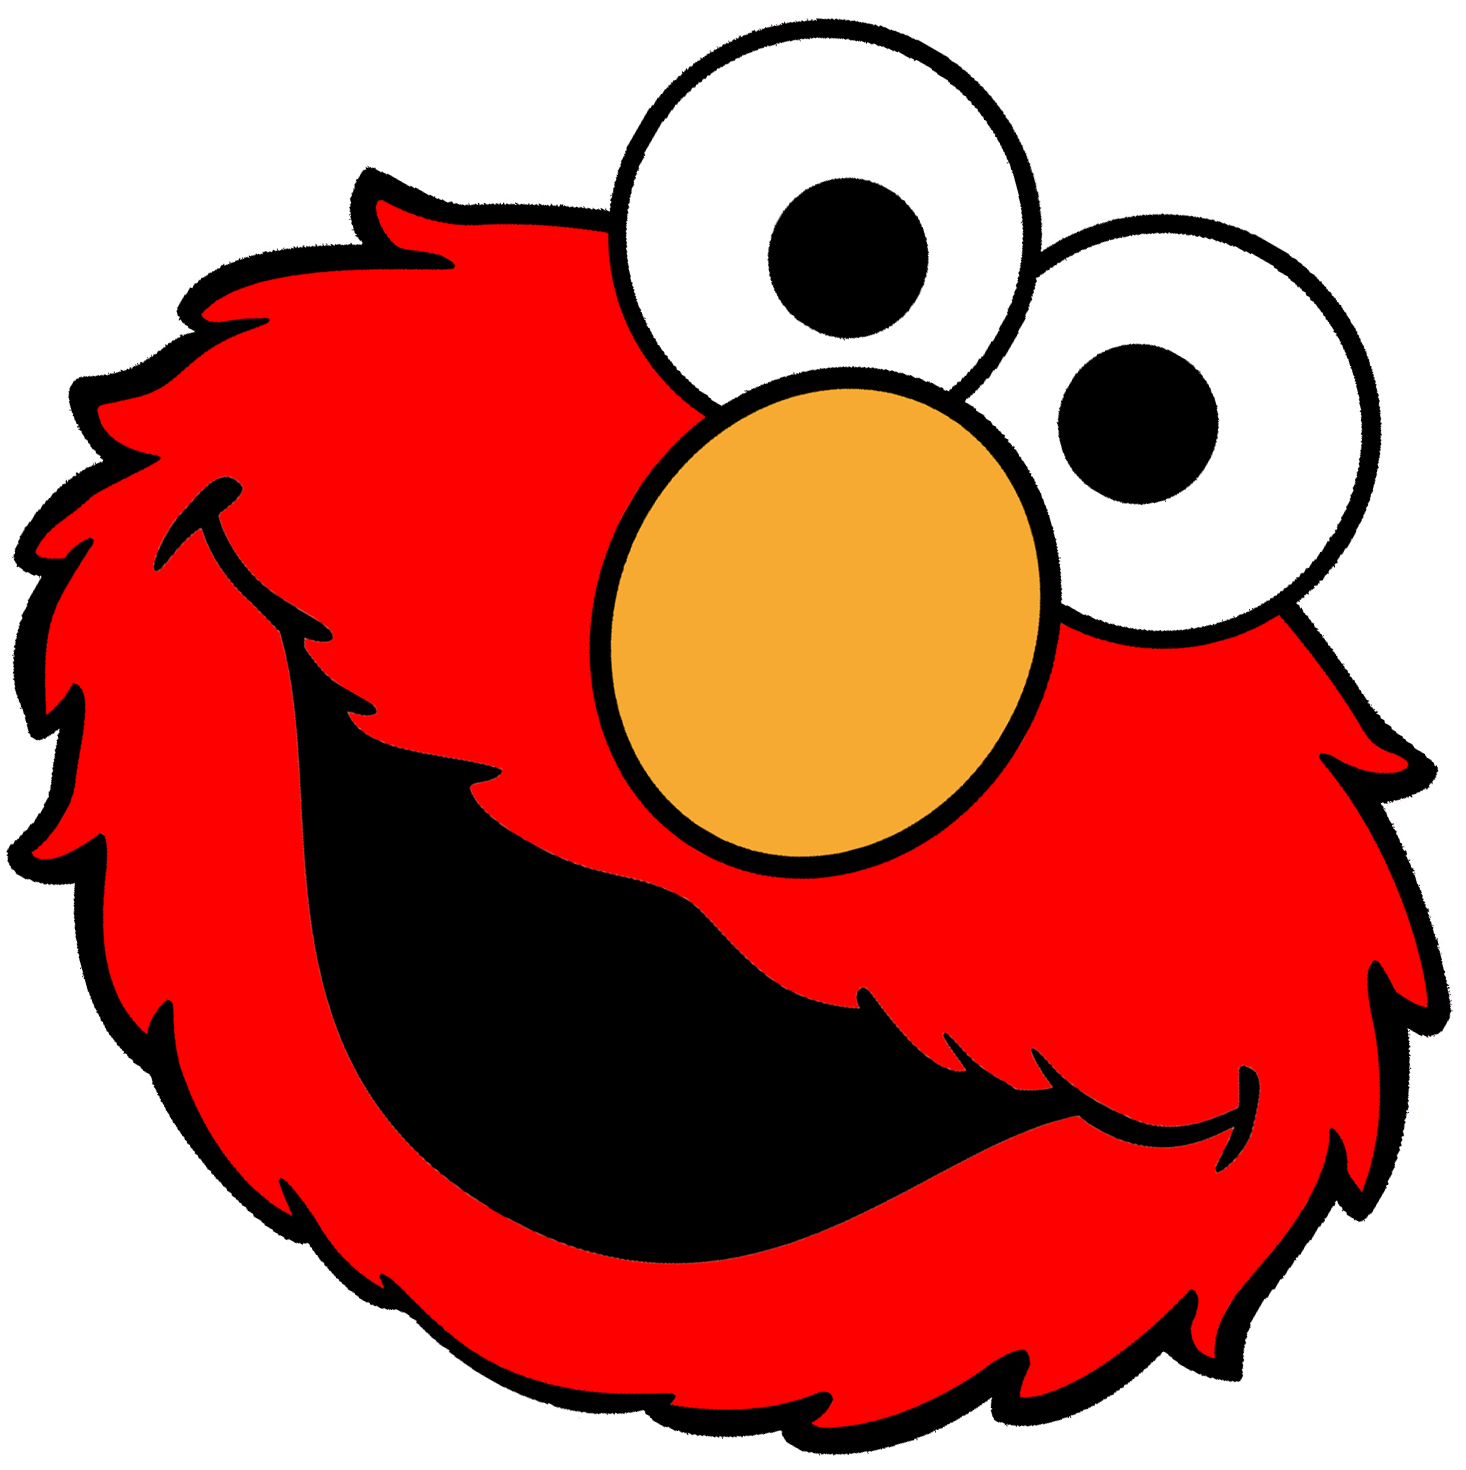 Elmo png. Hd transparent images pluspng